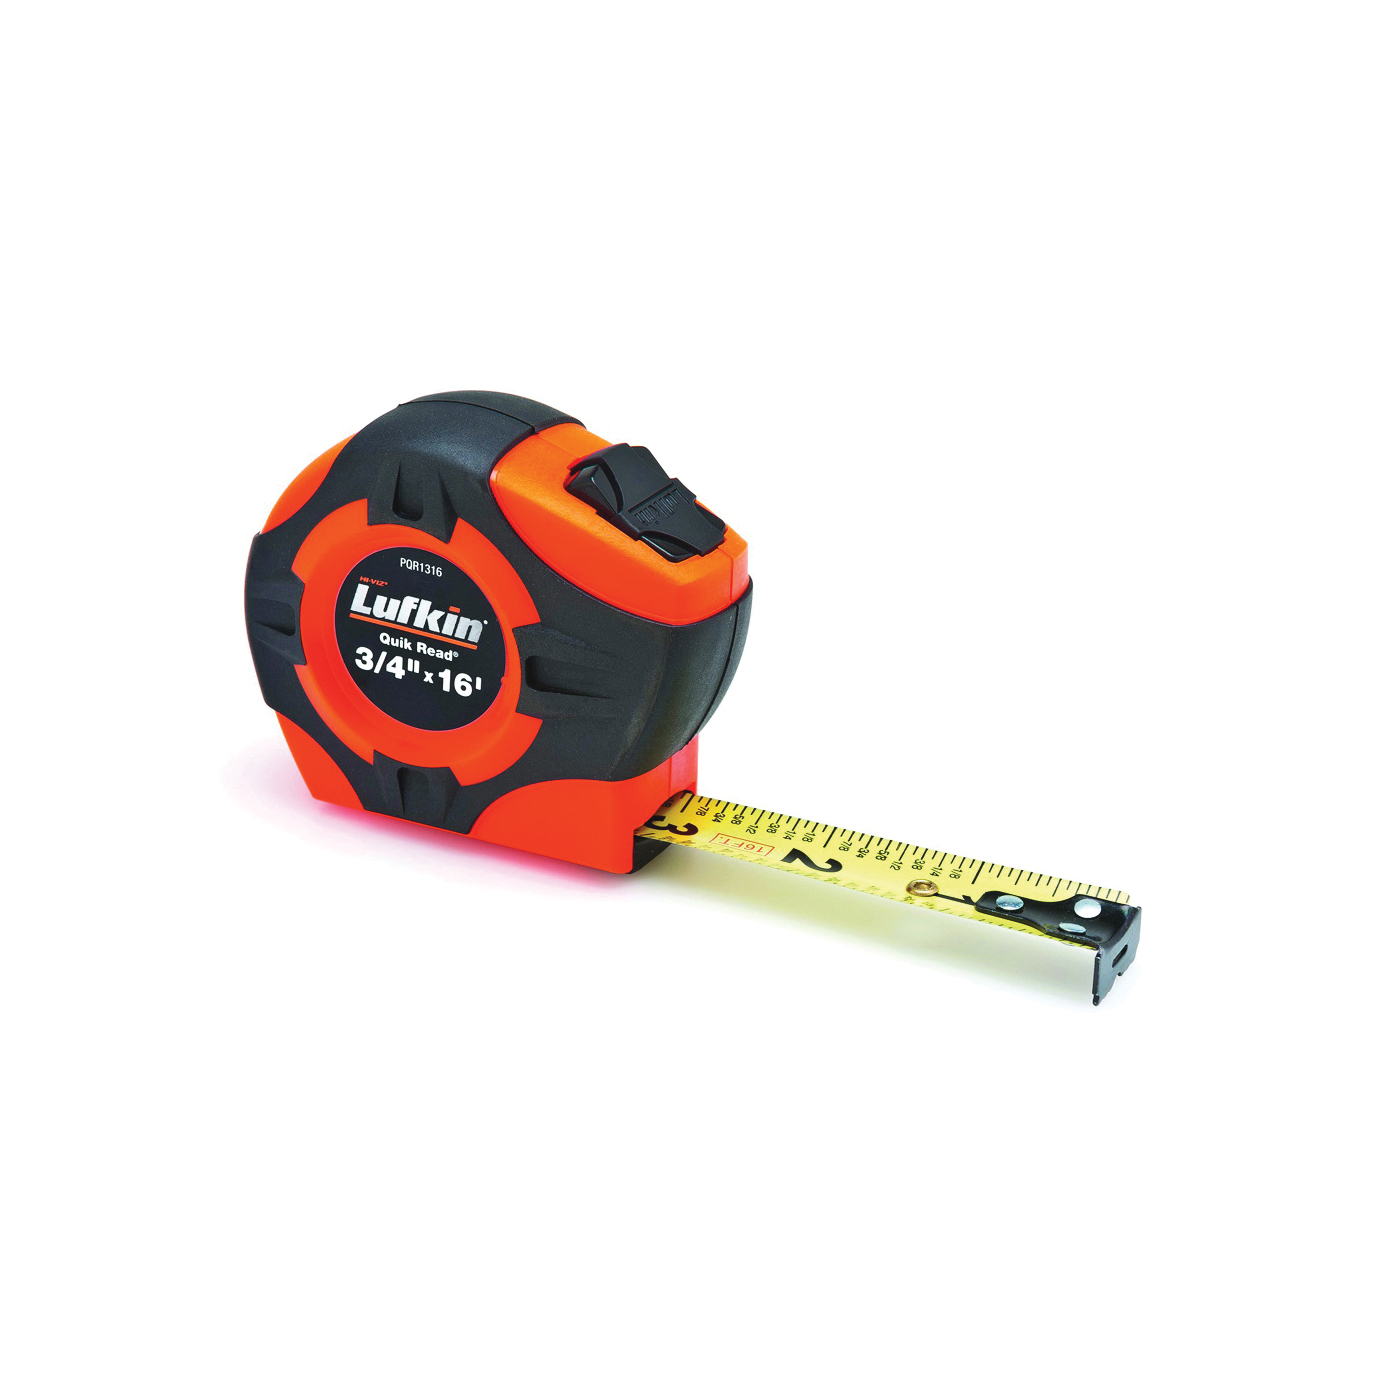 Picture of Crescent Lufkin Quikread PQR1316N Tape Measure, 16 ft L Blade, 3/4 in W Blade, Steel Blade, ABS/Rubber Case